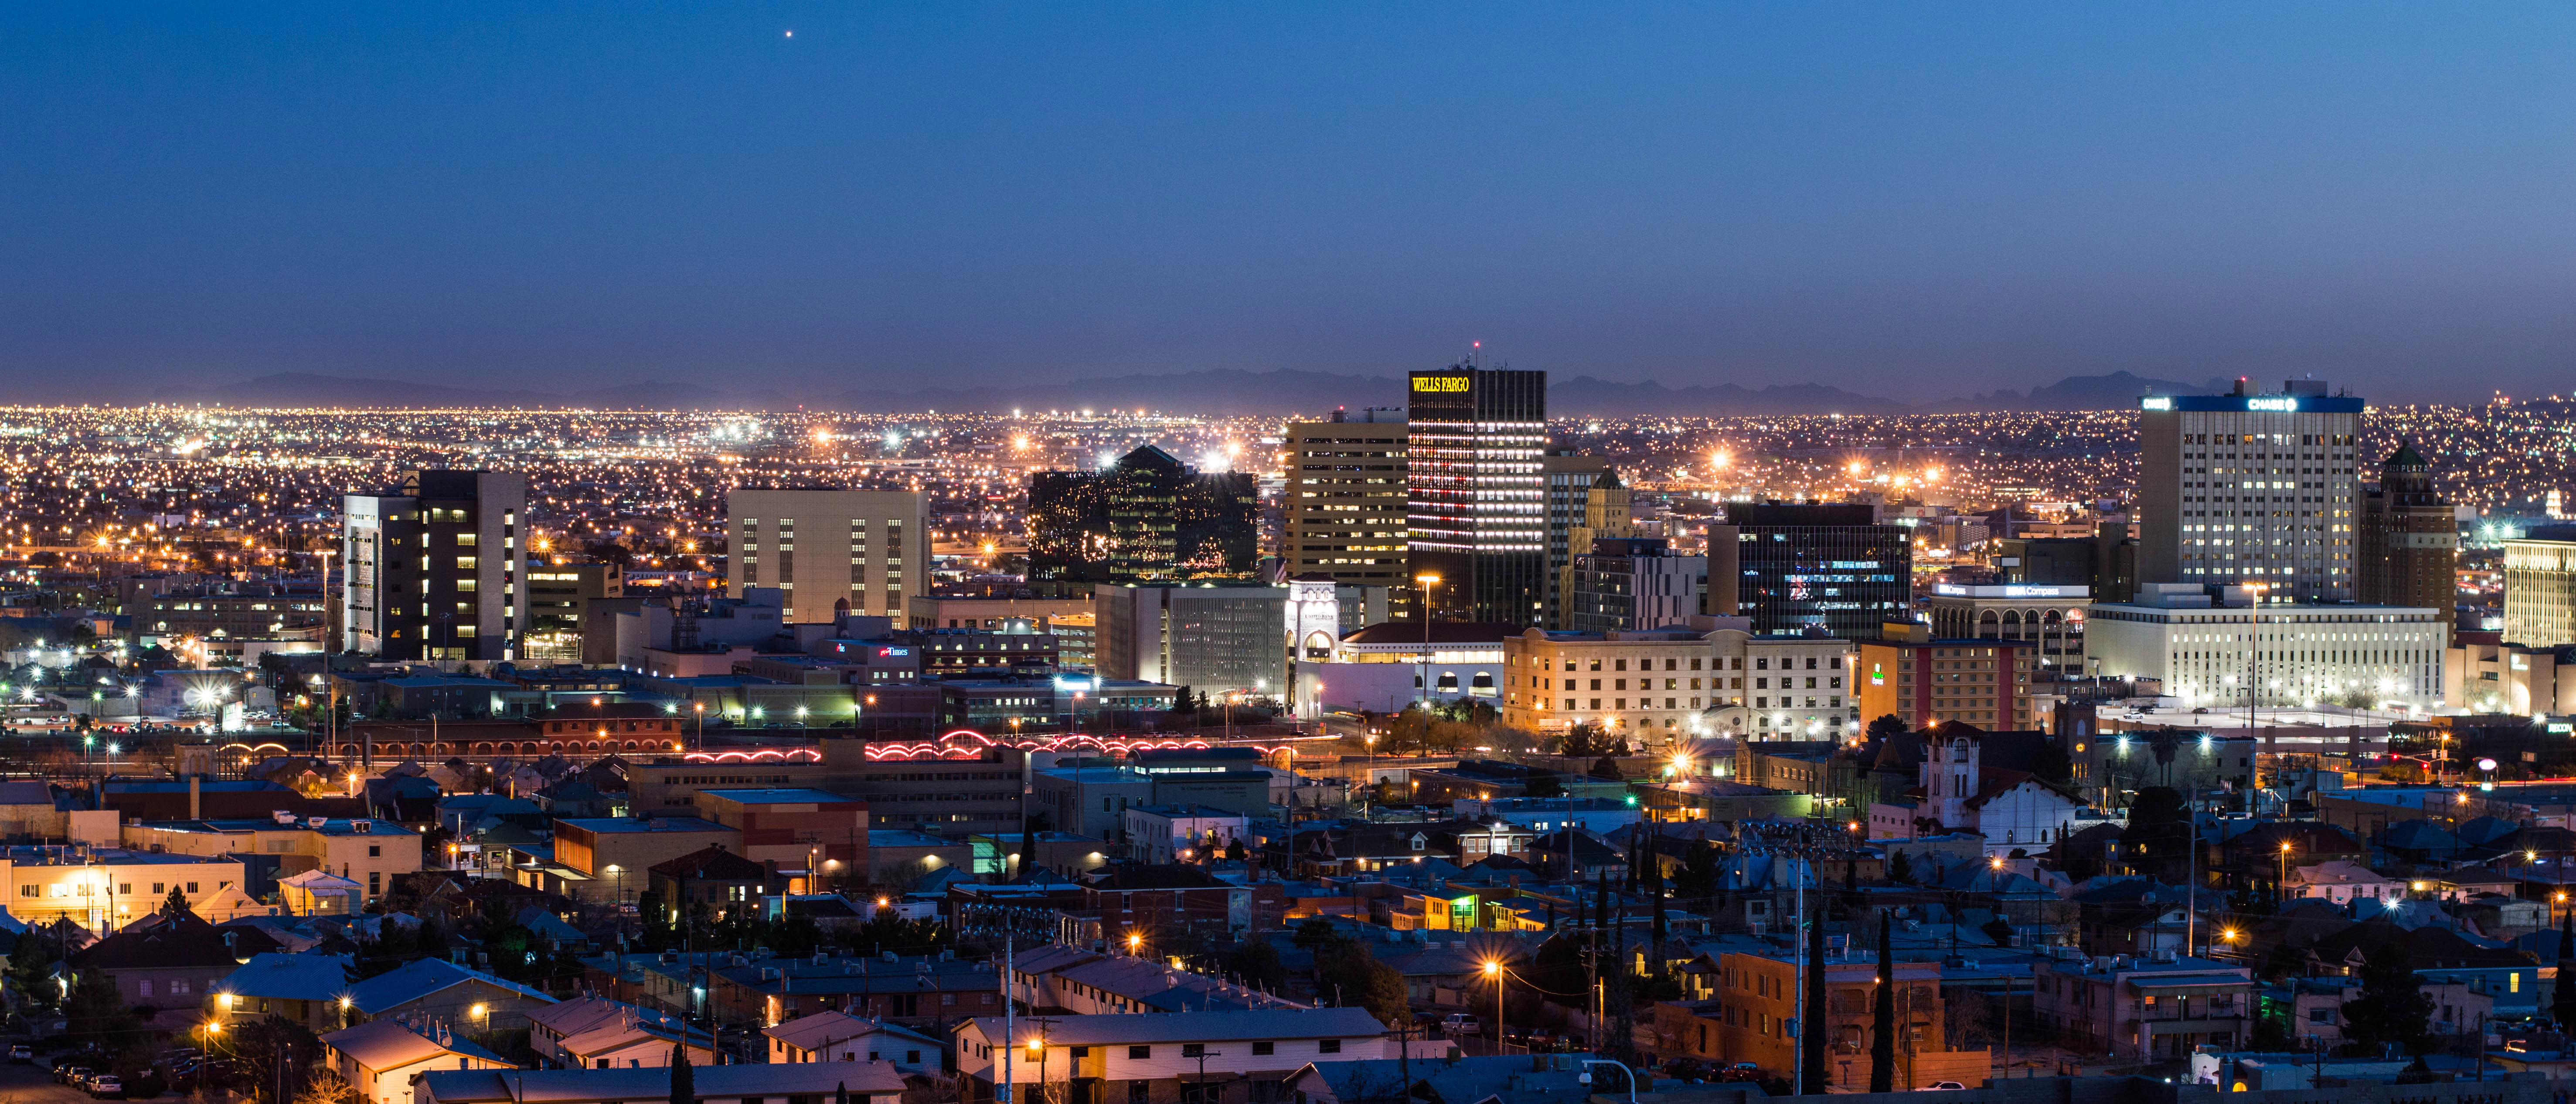 night-cityscape-with-lights-of-el-paso-texas.jpg